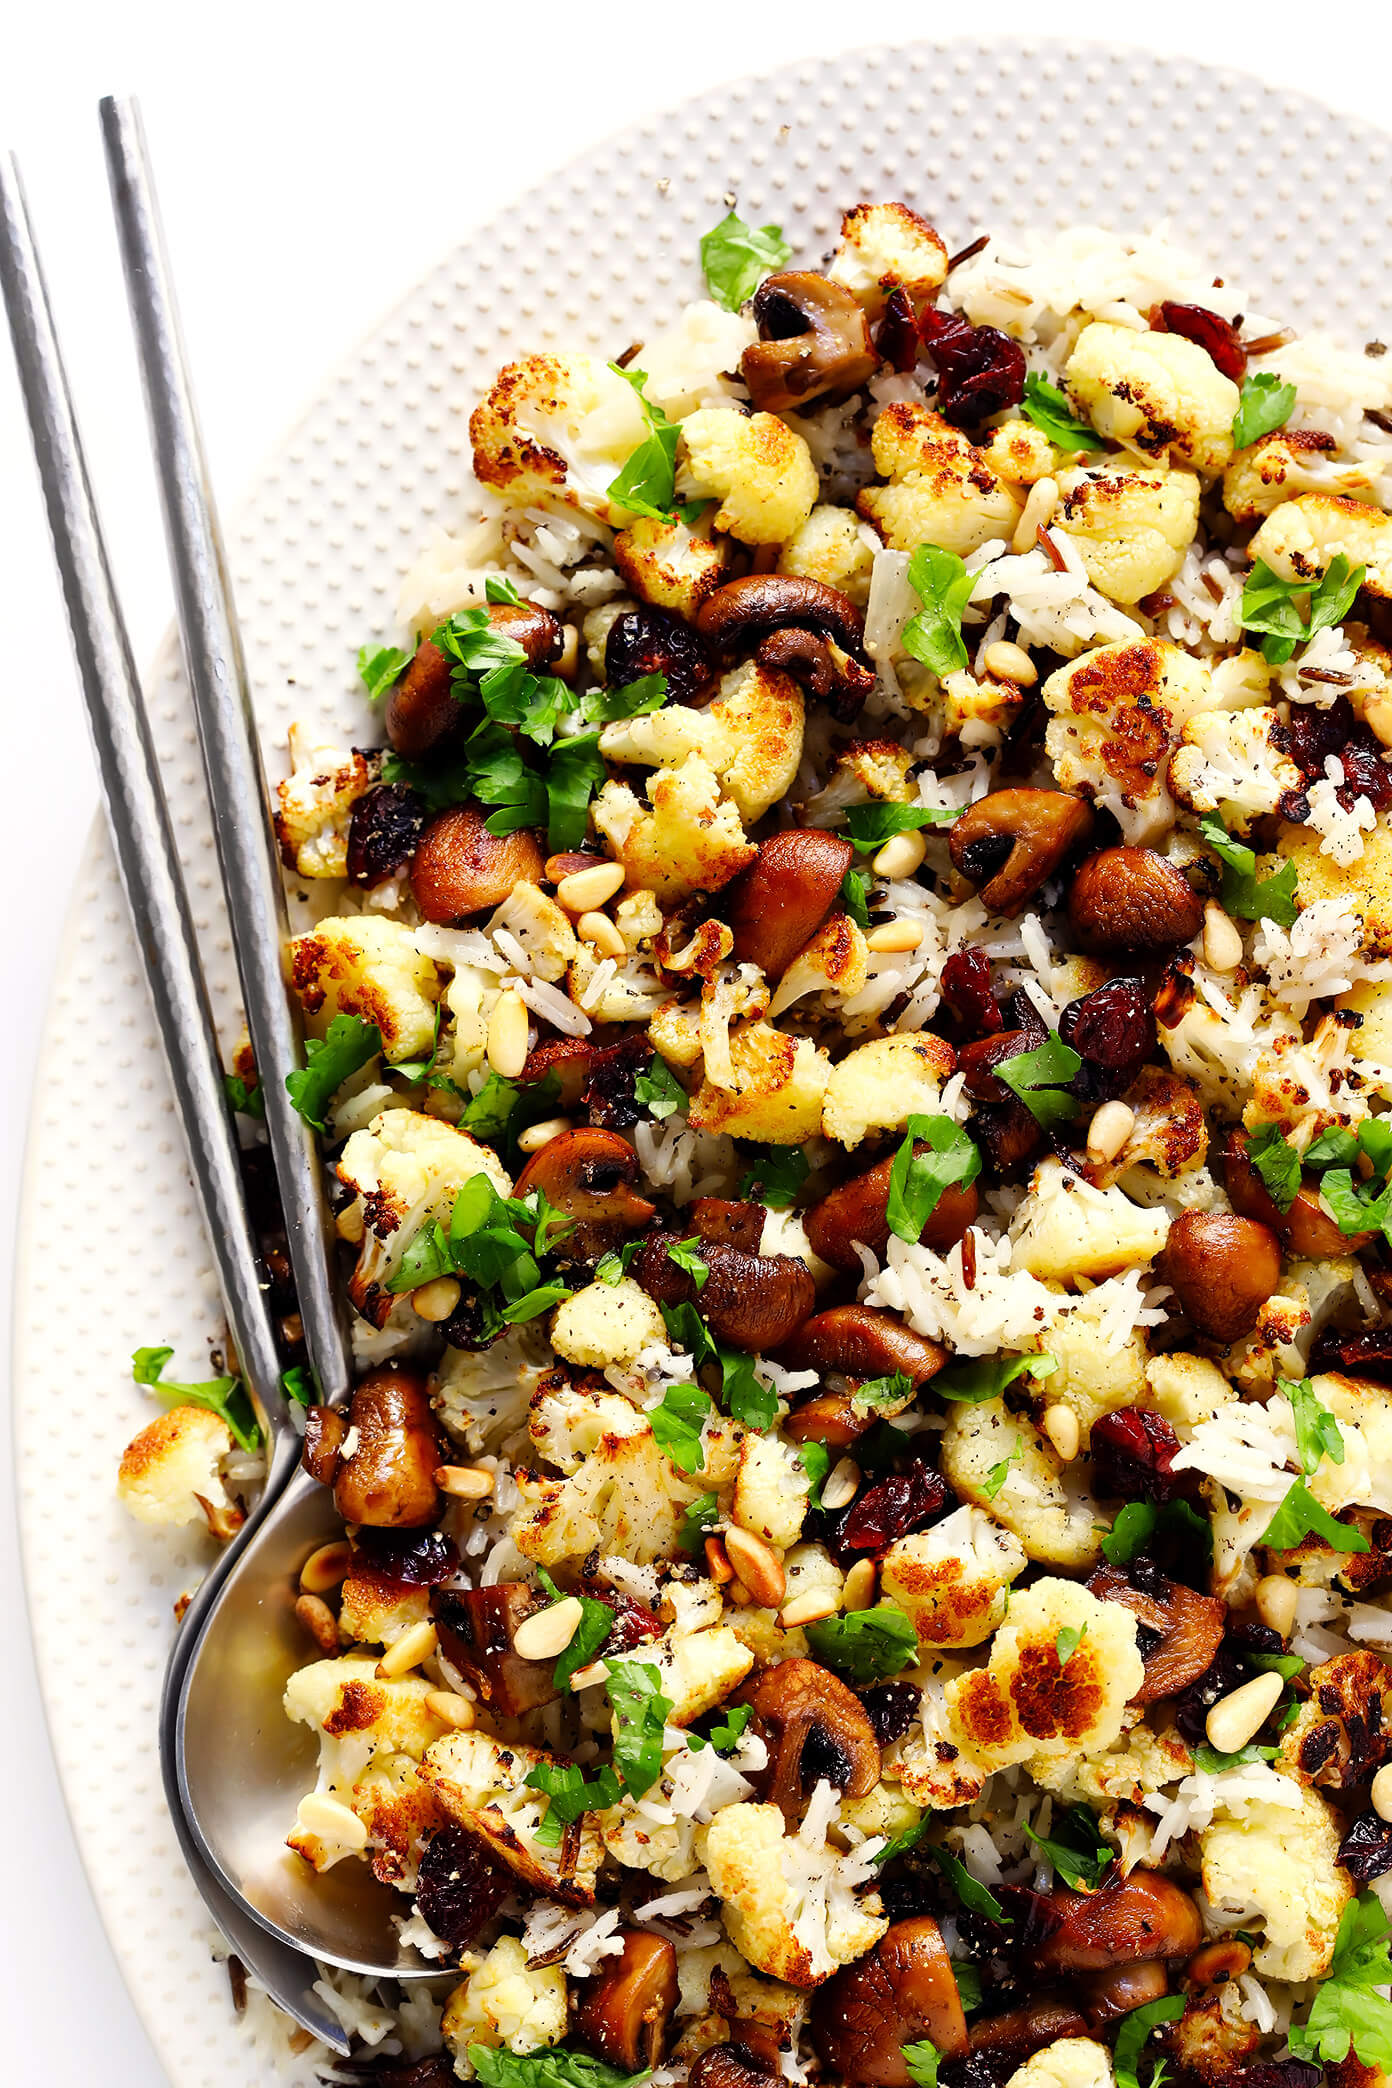 """This Roasted Cauliflower, Mushroom and Wild Rice """"Stuffing"""" is the perfect recipe to serve as a Thanksgiving side dish...or as dinner any night of the year! It's naturally gluten-free, vegetarian and vegan. It's made with delicious lemon-garlic rice, dried cranberries, toasted pine nuts, and roasted veggies. And it's AWESOME."""